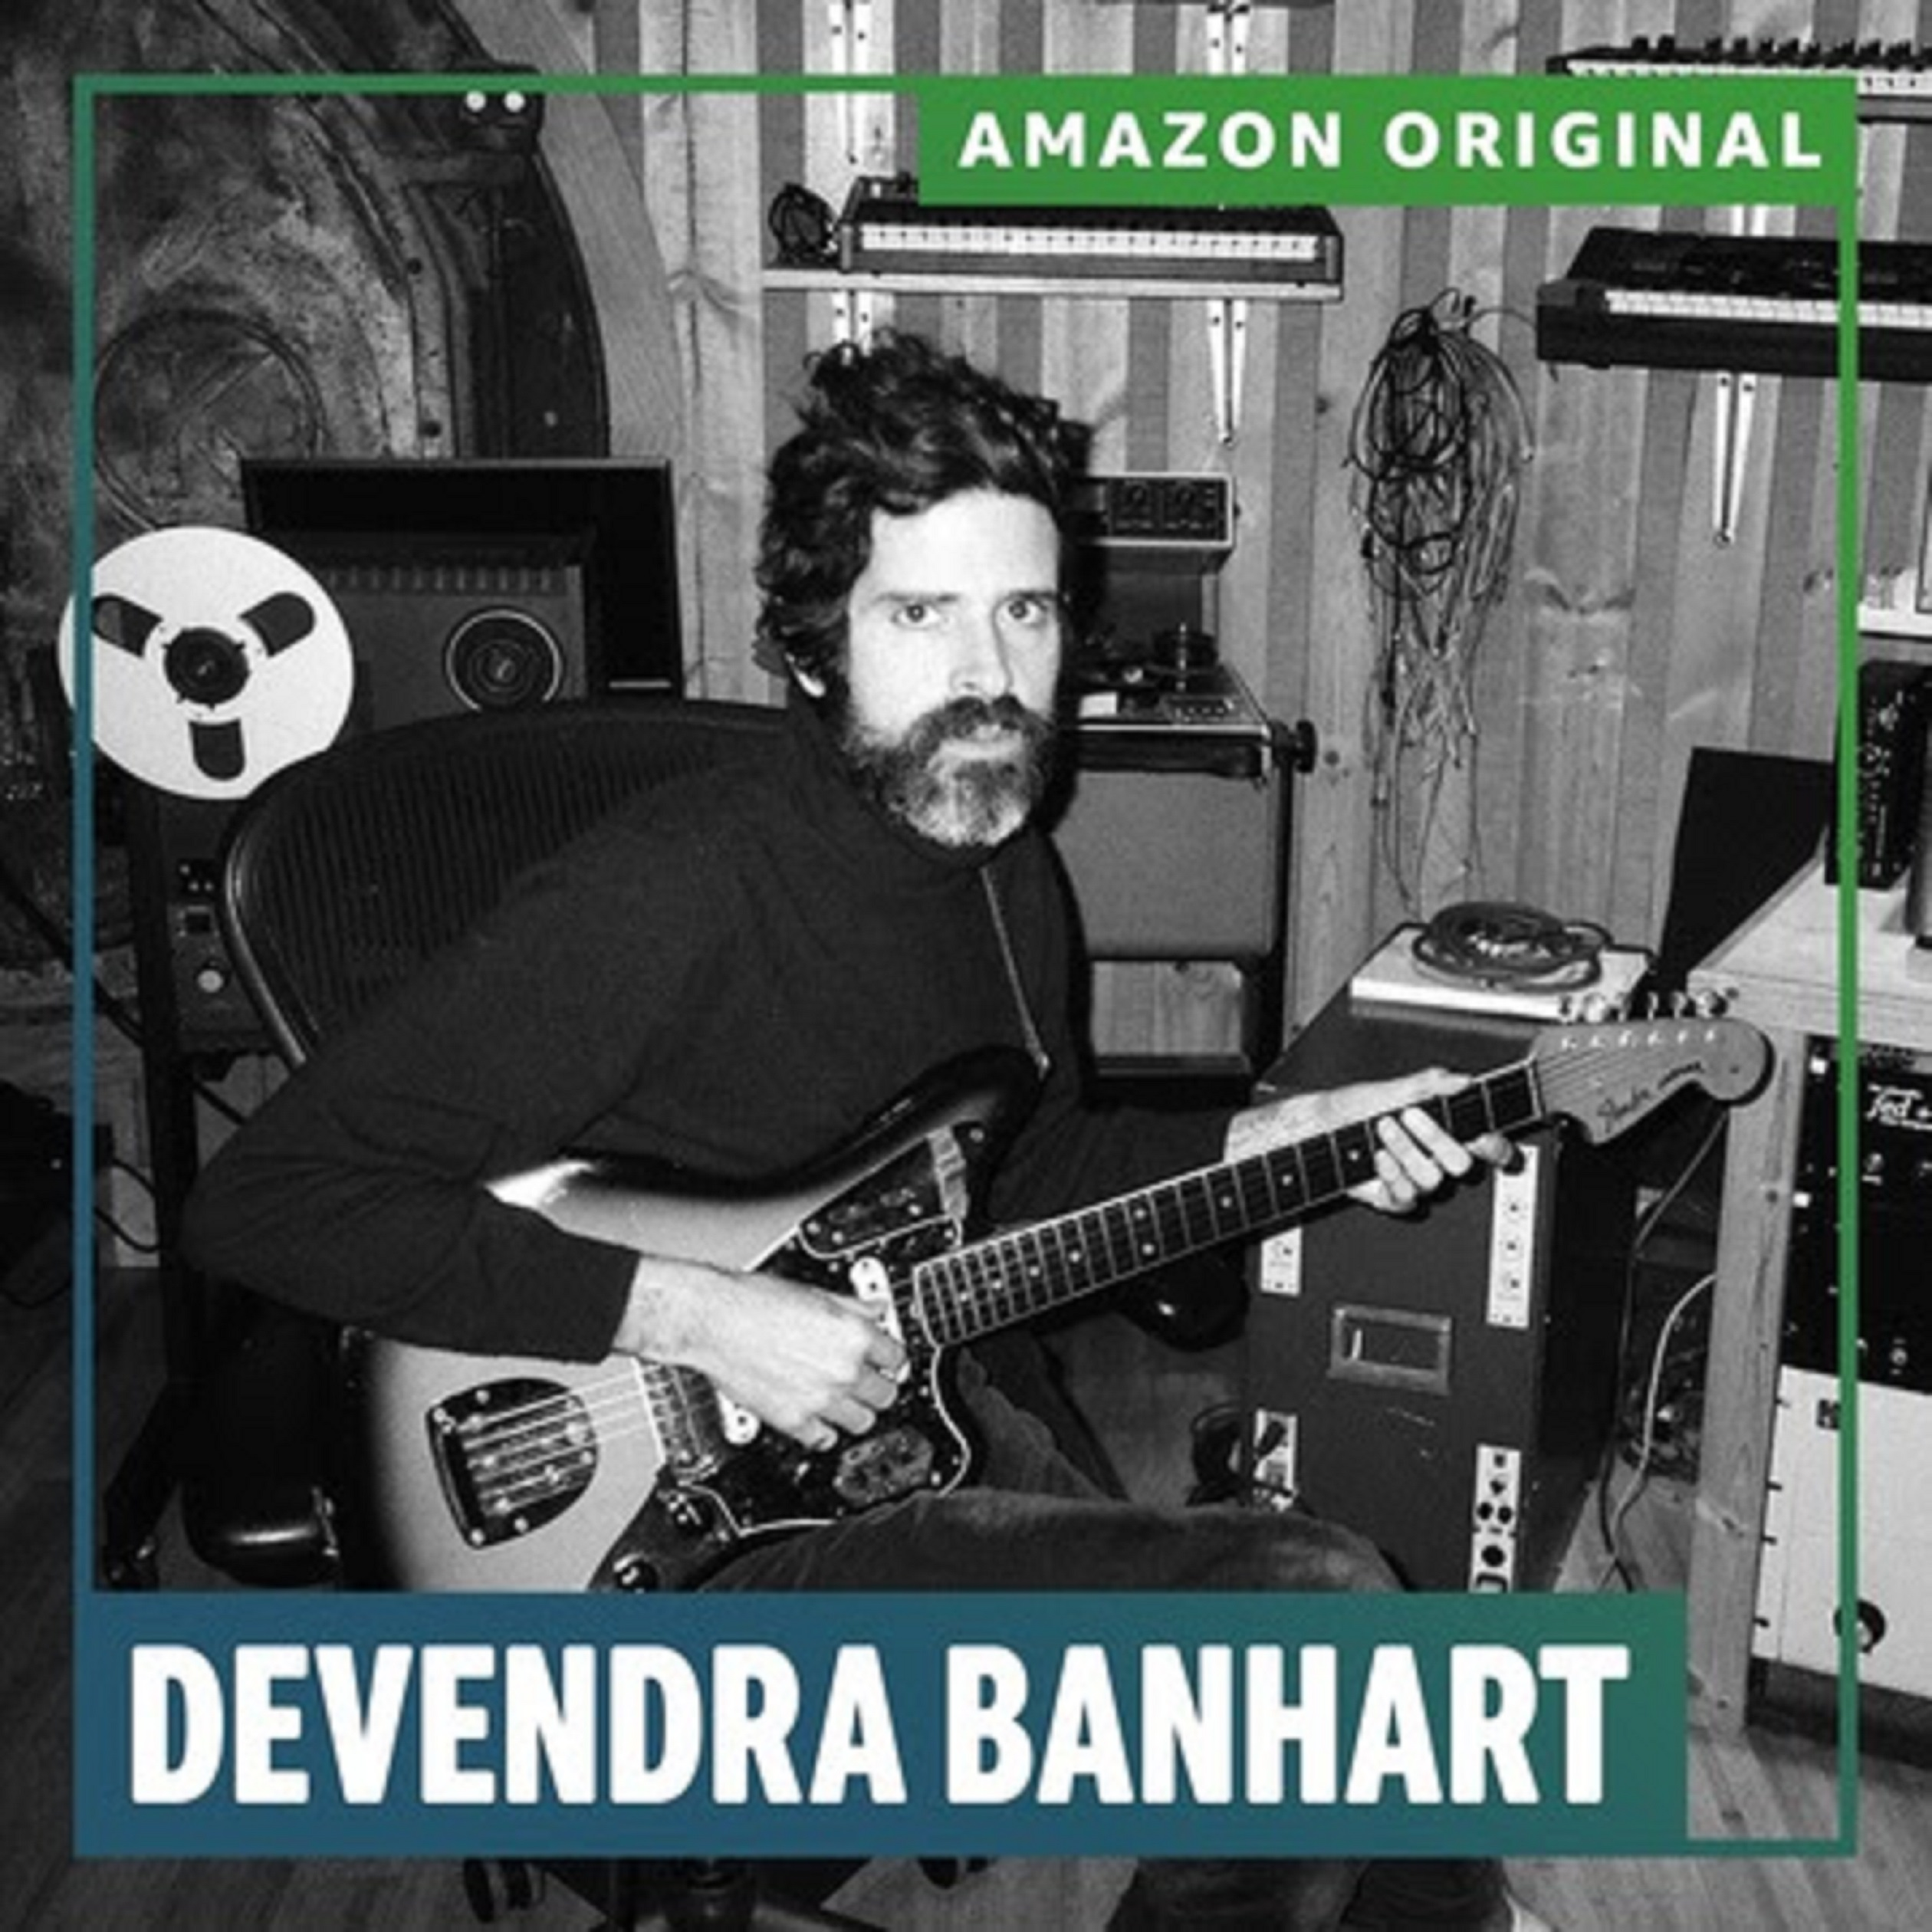 "Devendra Banhart Releases Amazon Original cover of The Dead's ""Franklin's Tower"""